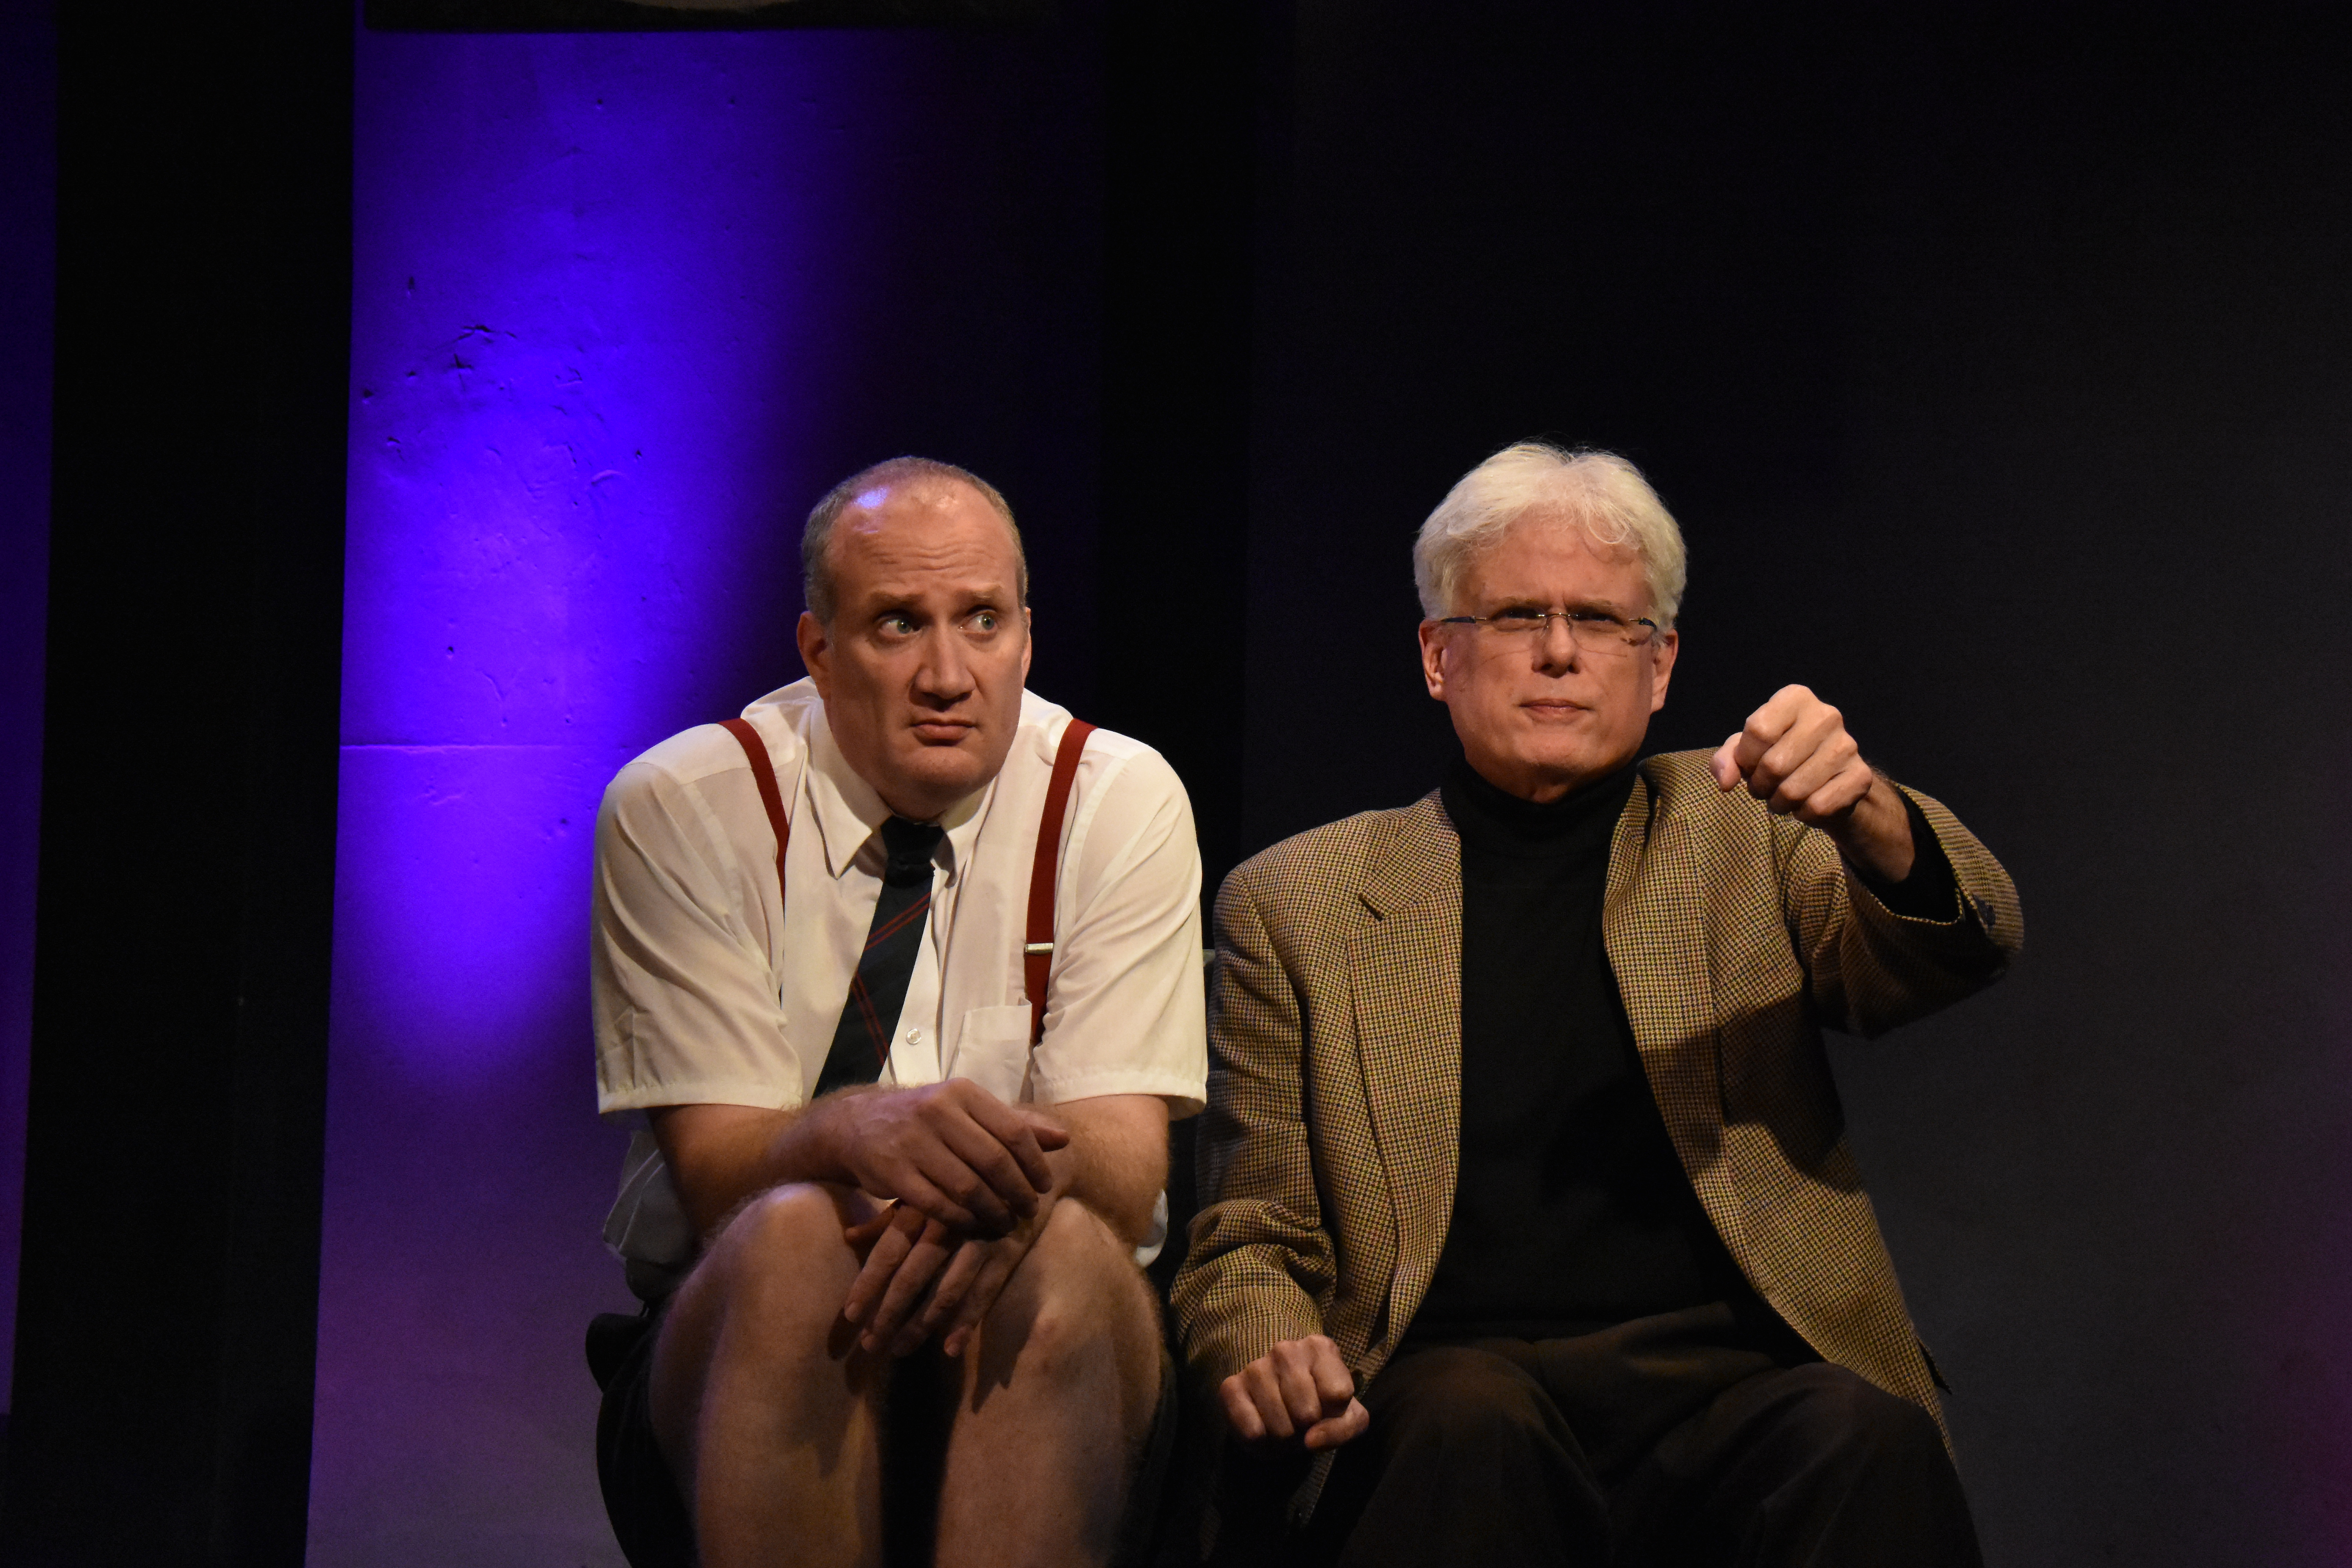 Brendan Averett as Andre the Giant and Dave Sikulaas Samuel Beckett in Sam & Dede, or my Dinner with Andre the Giant at 59E59 Theaters. Photo Jay Yamada.